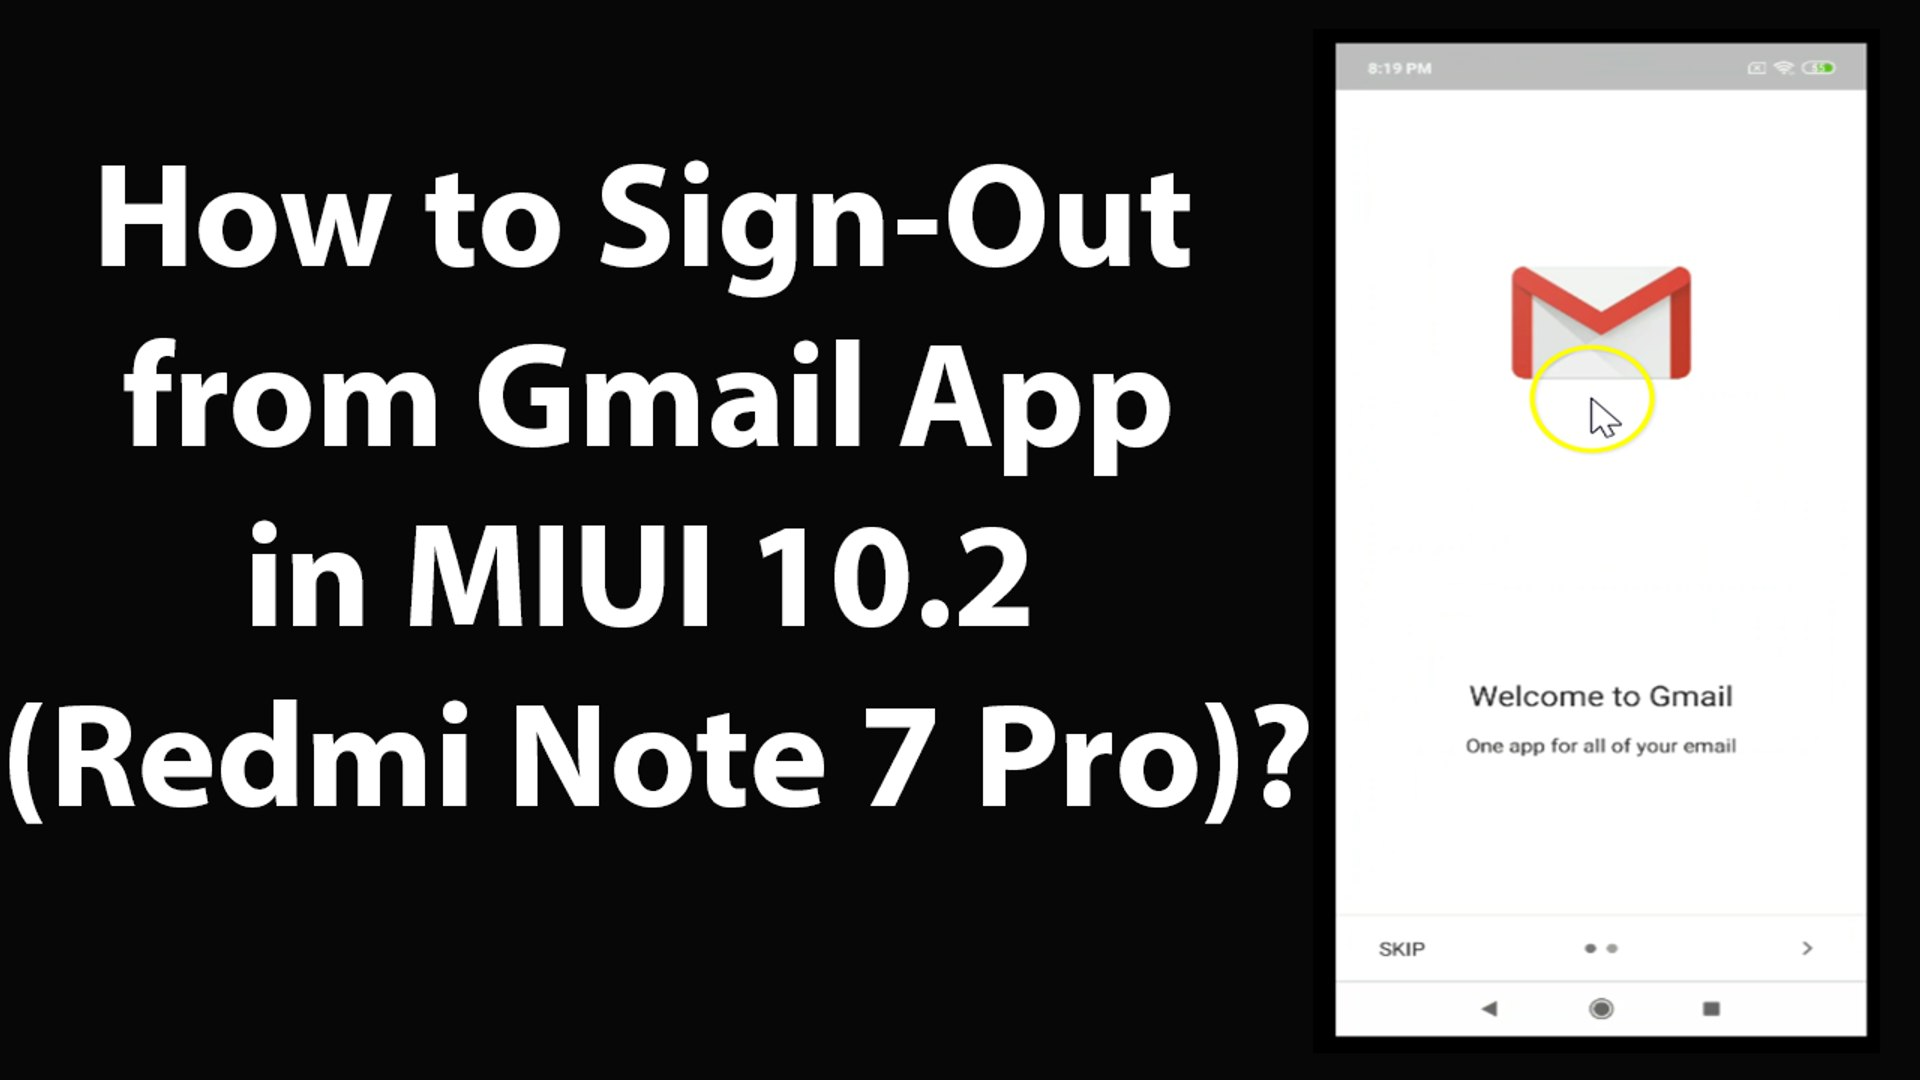 How to Sign-Out from Gmail App in MIUI 10 2 (Redmi note 7 Pro)?